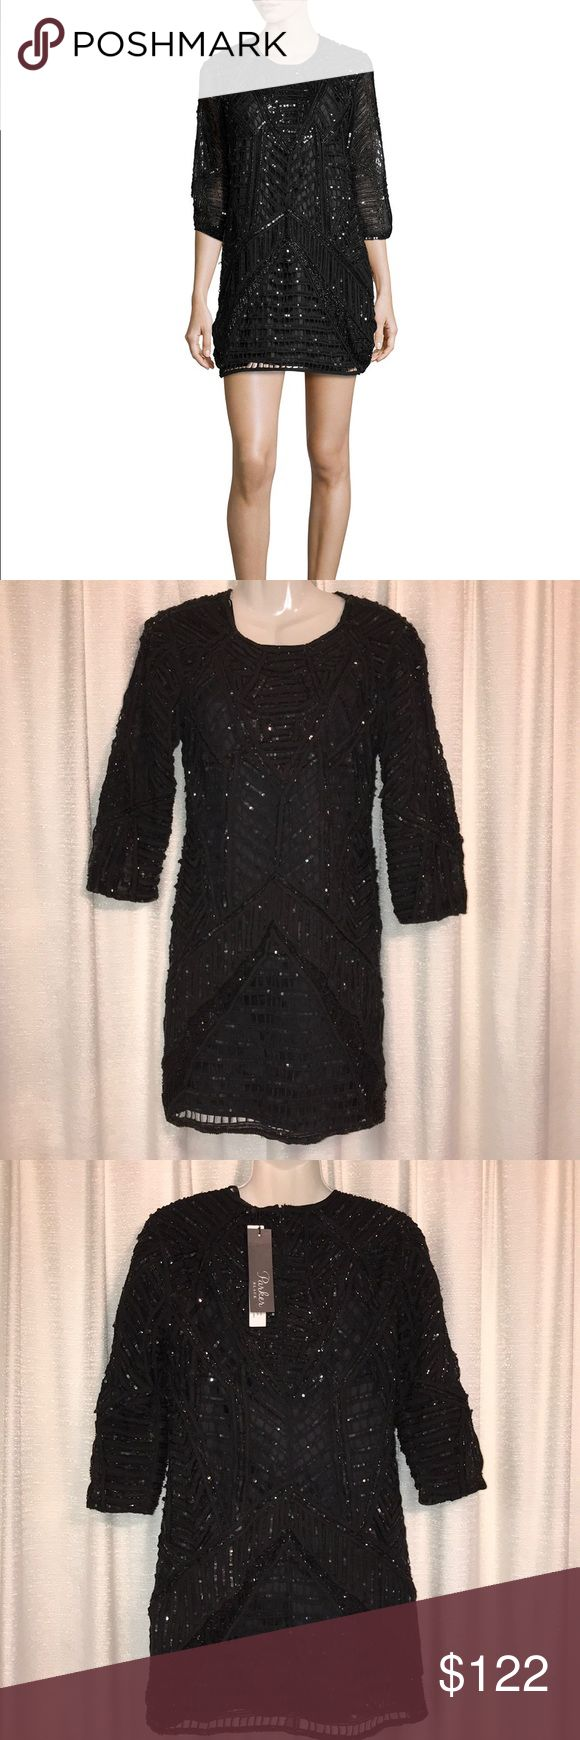 """🎄Parker Black """"Petra"""" Sequined Cocktail Dress 🥂 🎊🥂🎄 So stunning!  Photos can't possibly do this dress justice. SOLD OUT EVERYWHERE!!  Crew neckline. 3/4 Sleeves. Fully lined. Shift silhouette. Back zip. Rayon polyester lining. """"...the Parker girl loves sophistication and sexy all in the same look.""""  Size 6. Length 32"""" from shoulder. Perfect for holiday parties and New Years Eve! 🍸 Parker Dresses Mini"""